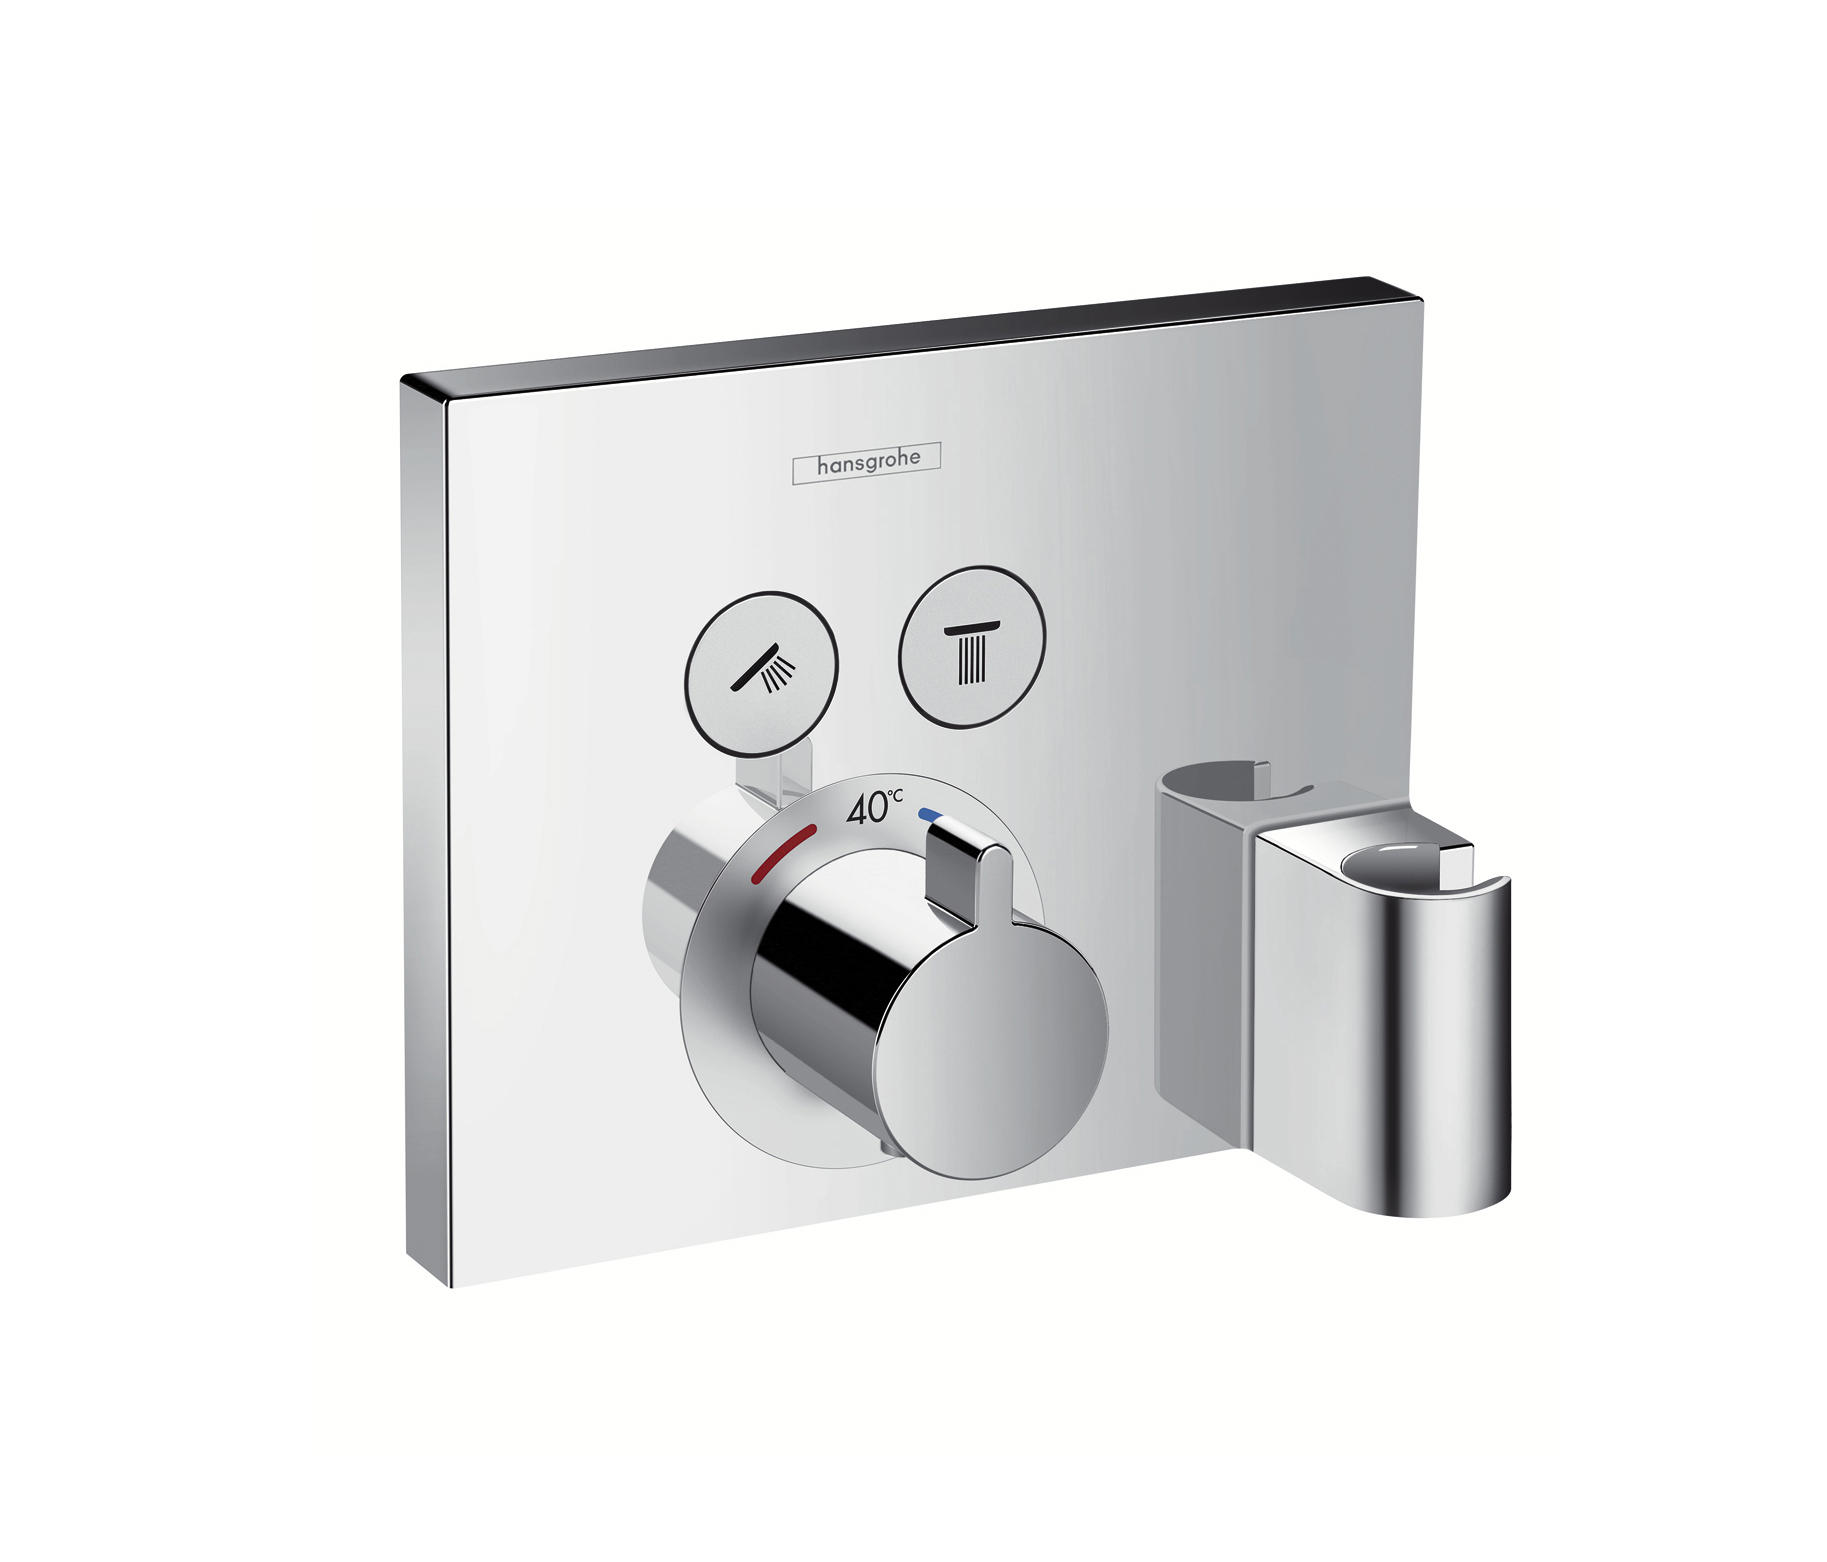 hansgrohe hg ecostat select thermostat up fertigset 2 av porter chrom robinetterie de douche de. Black Bedroom Furniture Sets. Home Design Ideas